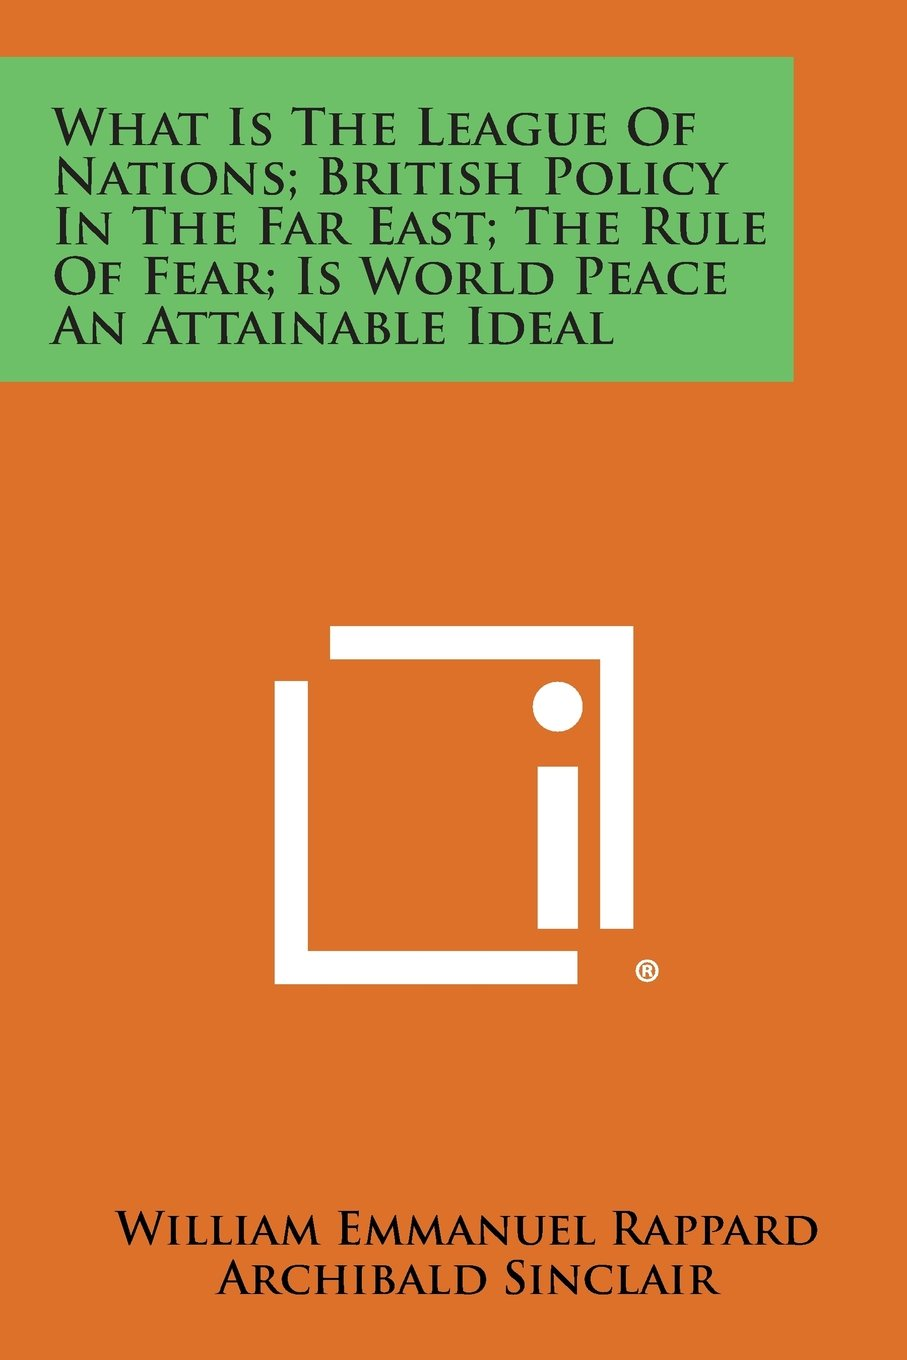 Download What Is the League of Nations; British Policy in the Far East; The Rule of Fear; Is World Peace an Attainable Ideal pdf epub